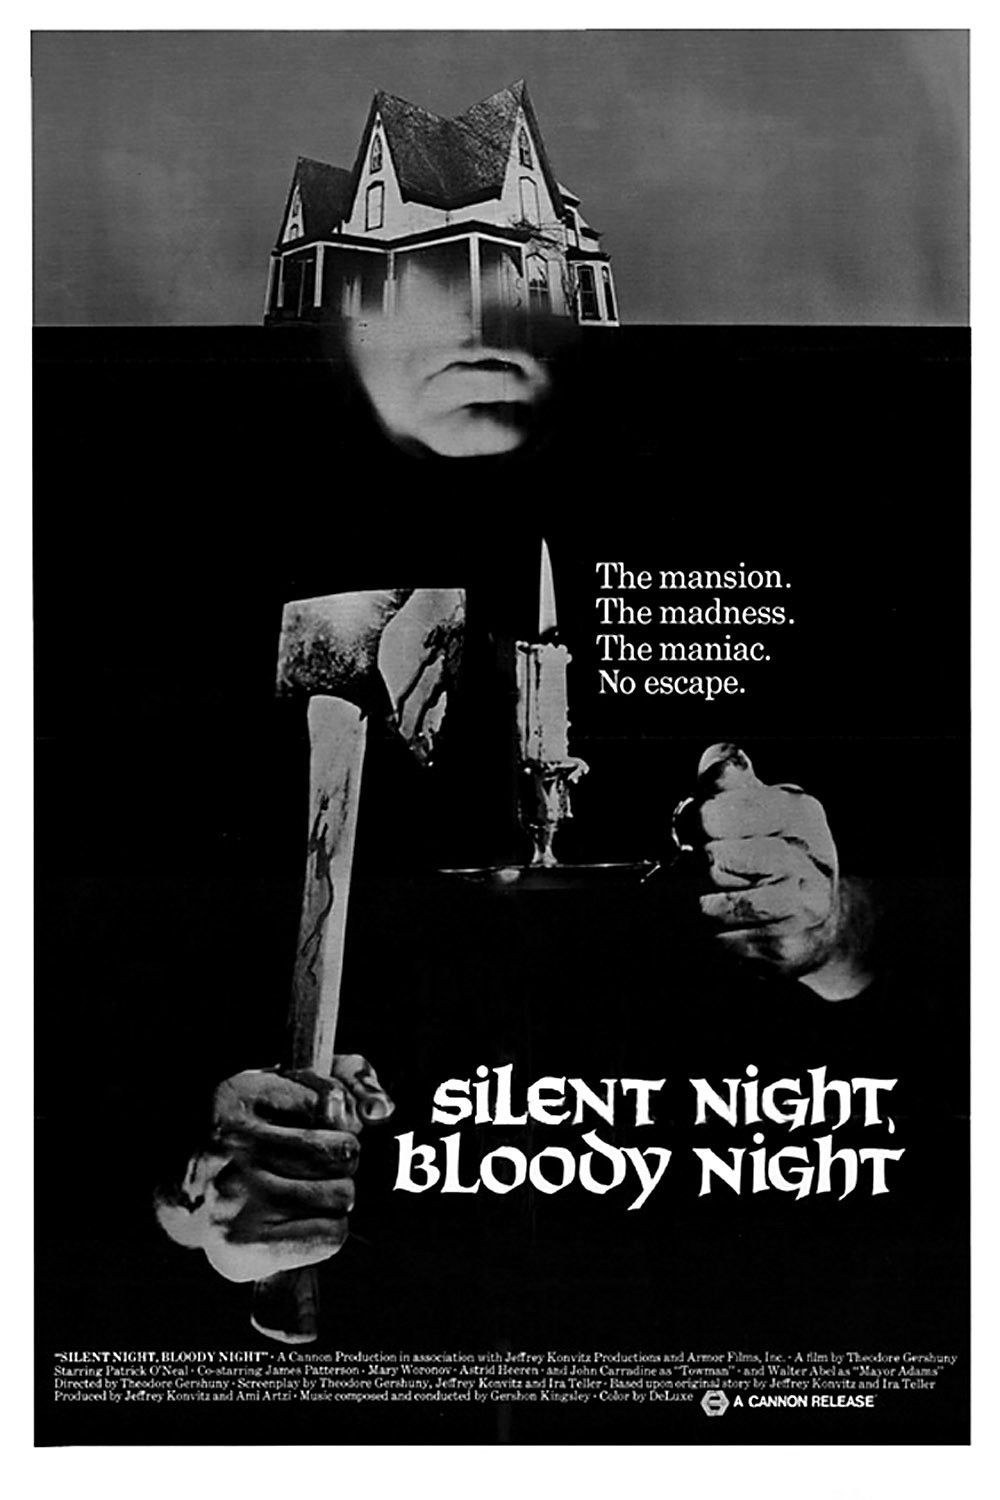 Pin on 70s horror thriller scifi posters